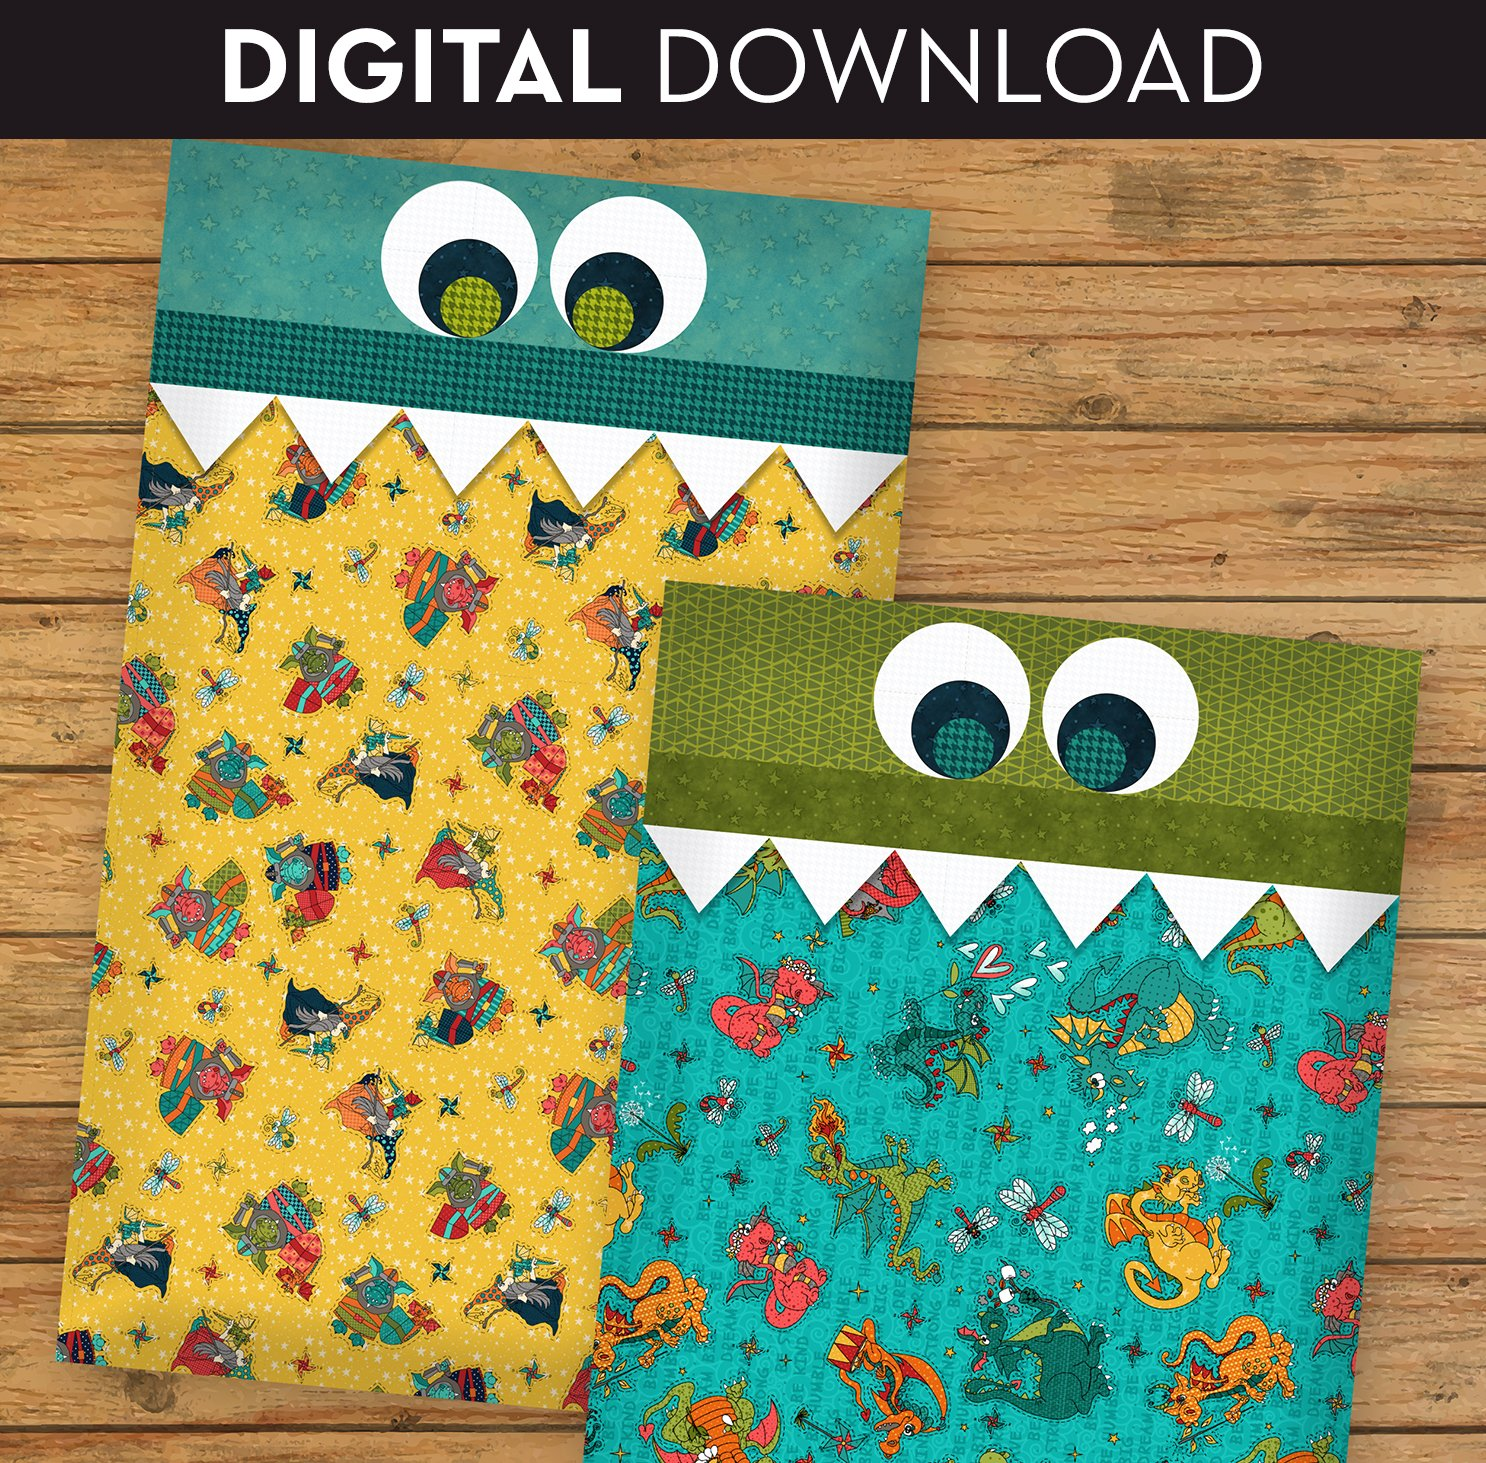 Dragon Pillowcase - Download